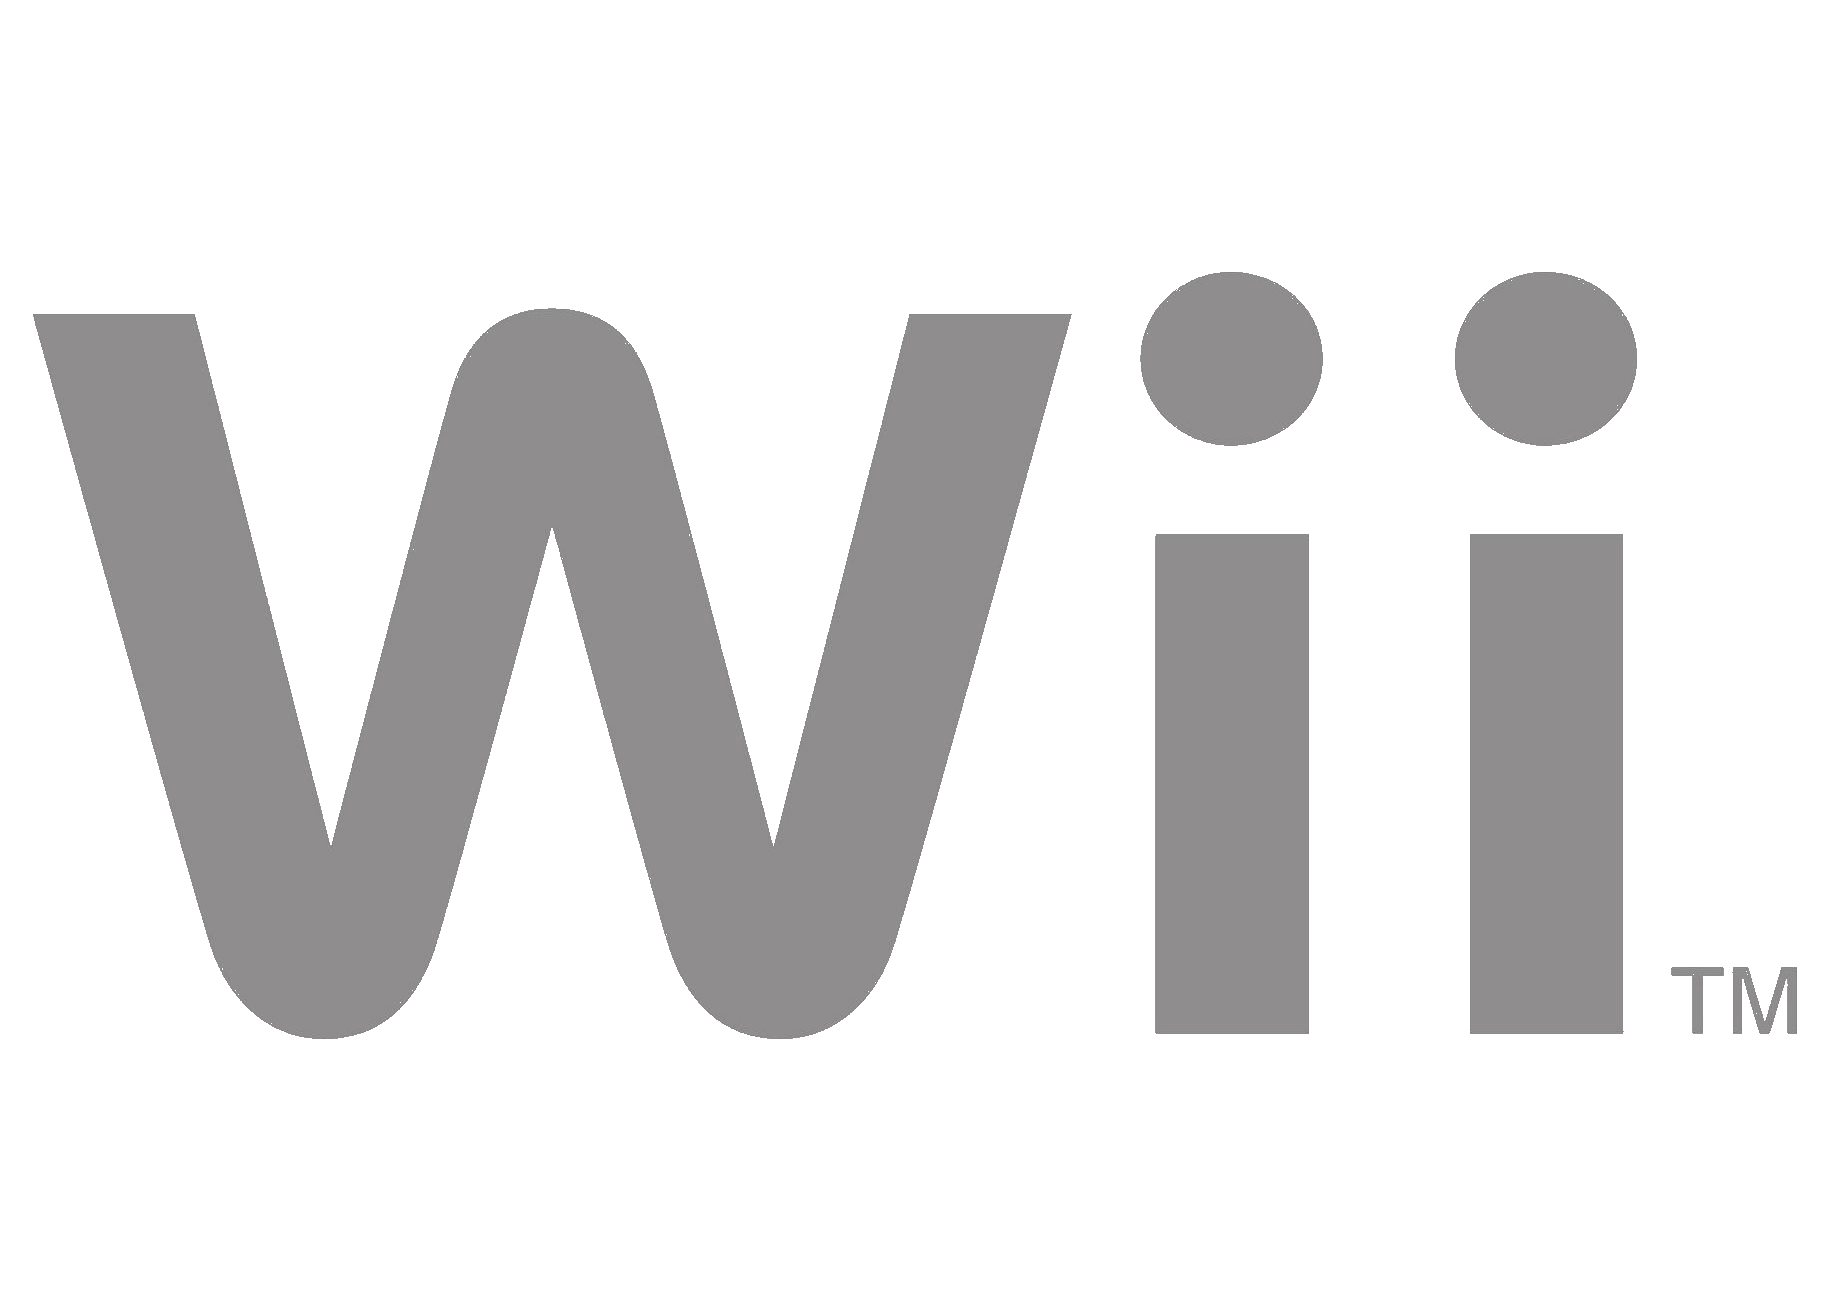 Wii Finally Have a Verdict, $16.5 Million for Tragic Death